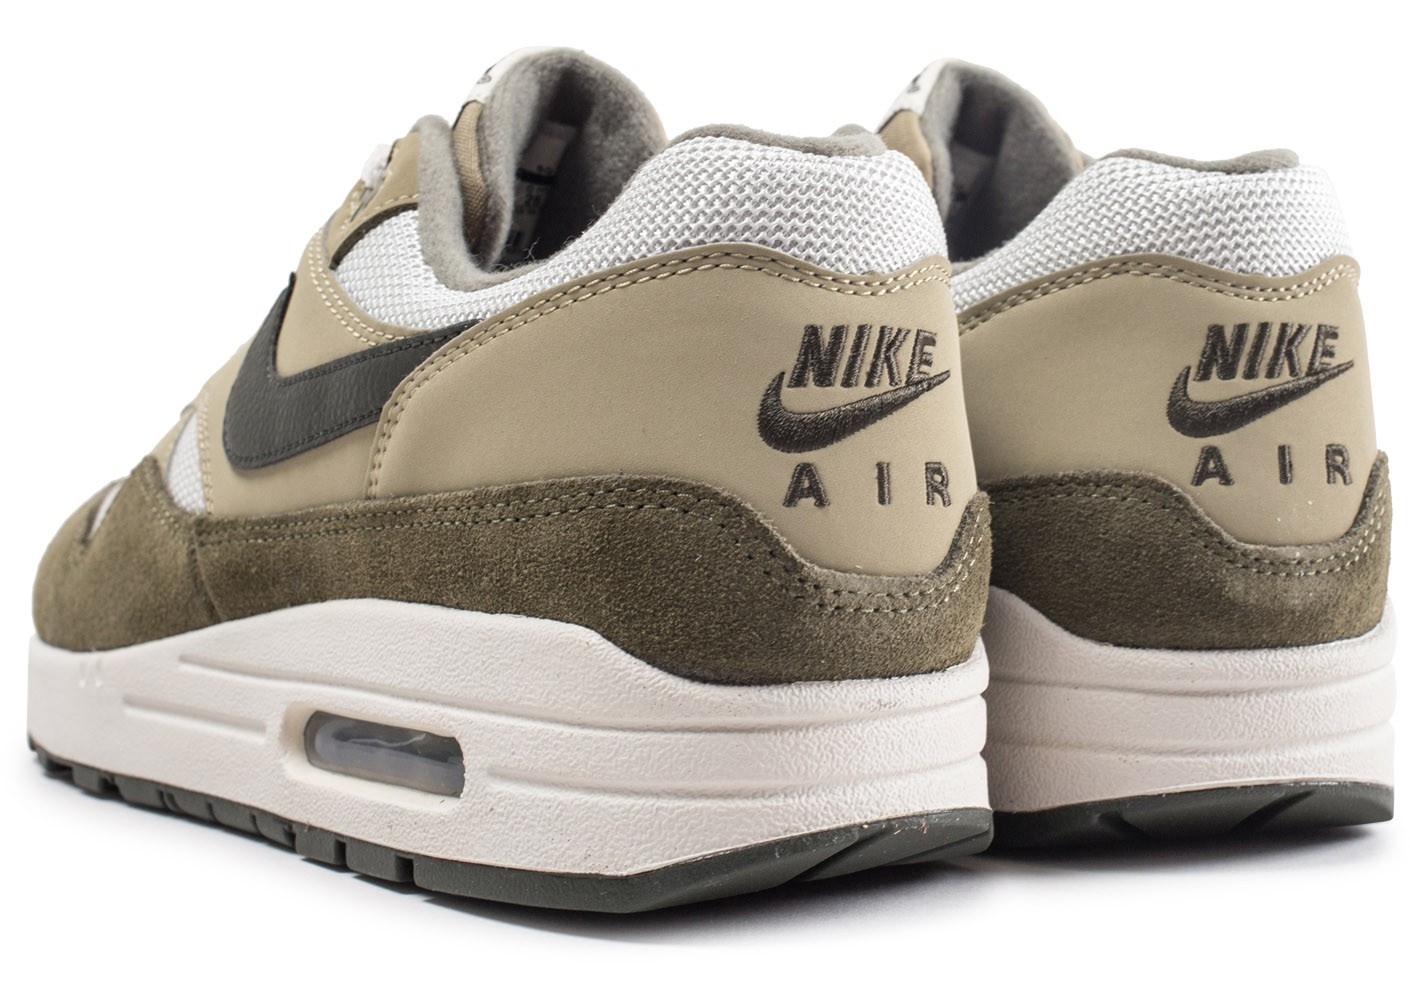 save off 702ab 32092 ... Chaussures Nike Air Max 1 Medium Olive vue dessous ...